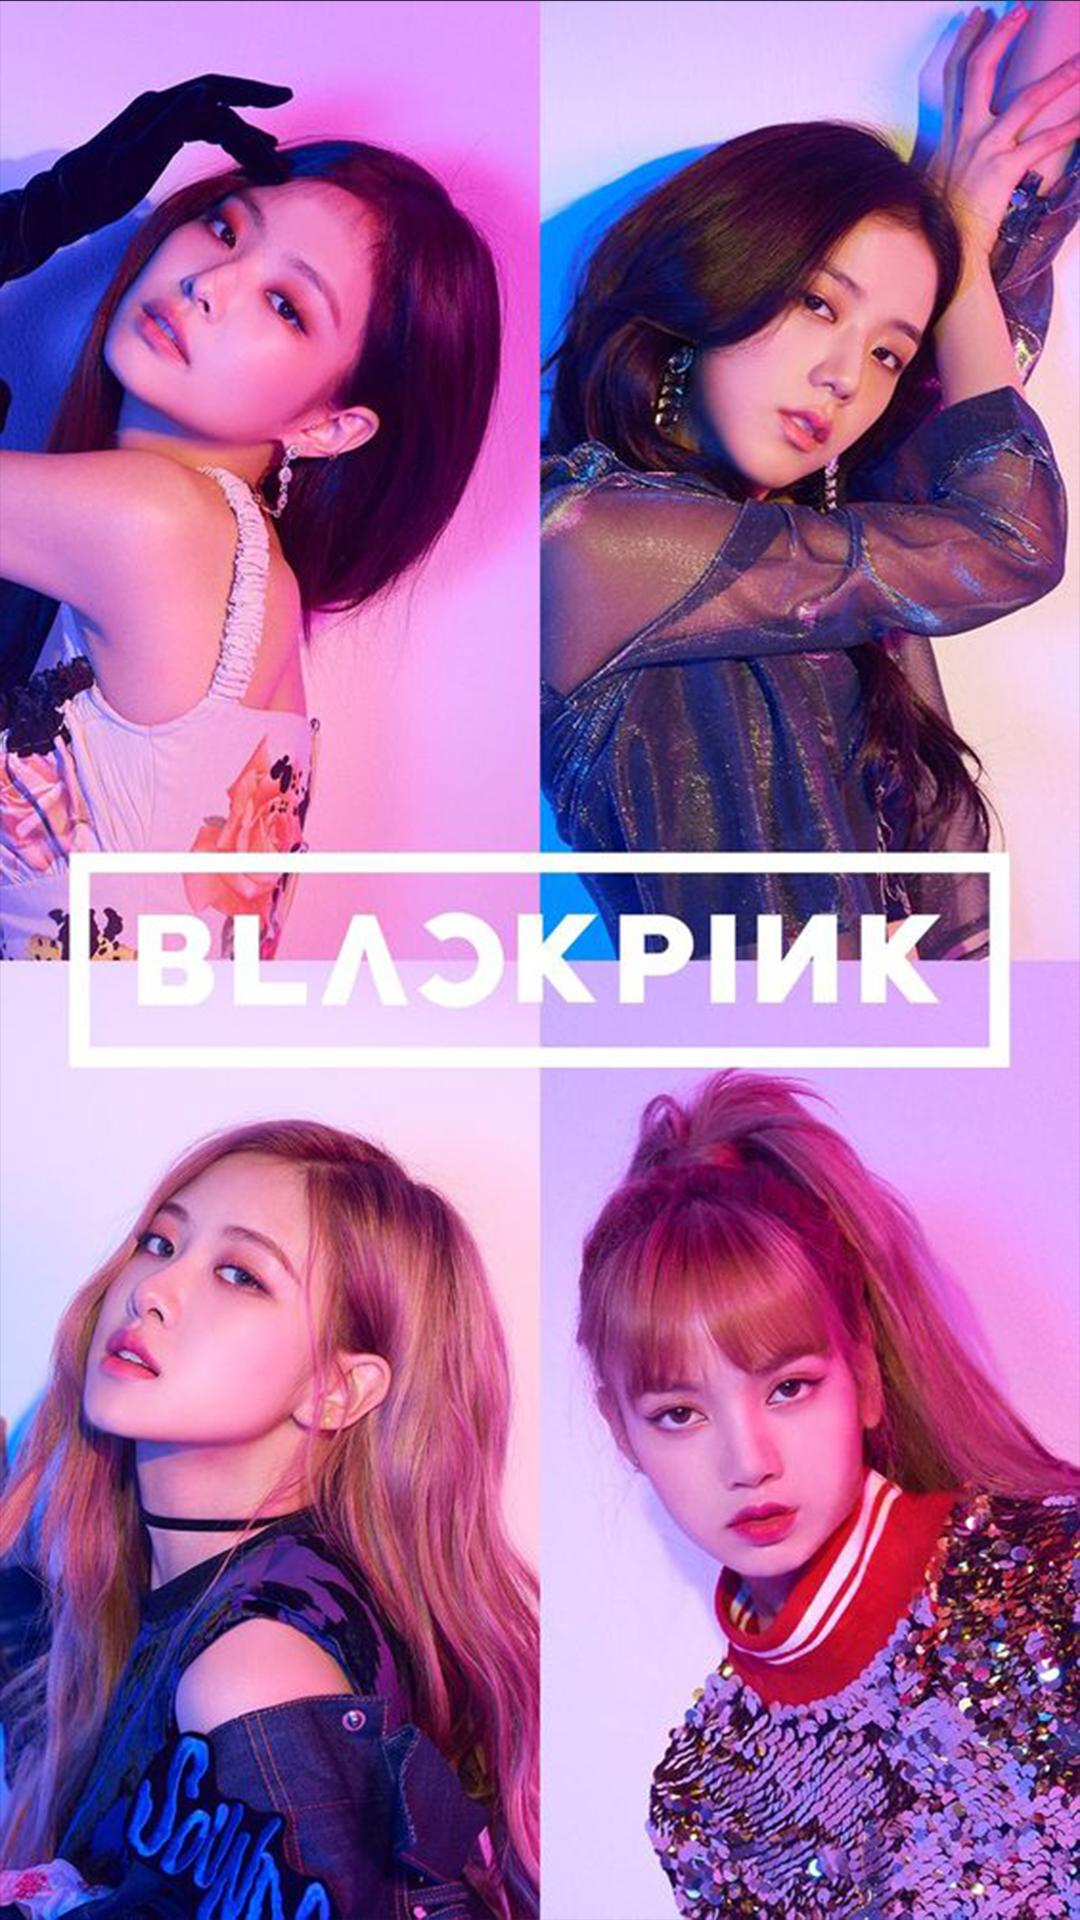 BTS Wallpapers HD & Black Pink Wallpapers for Android